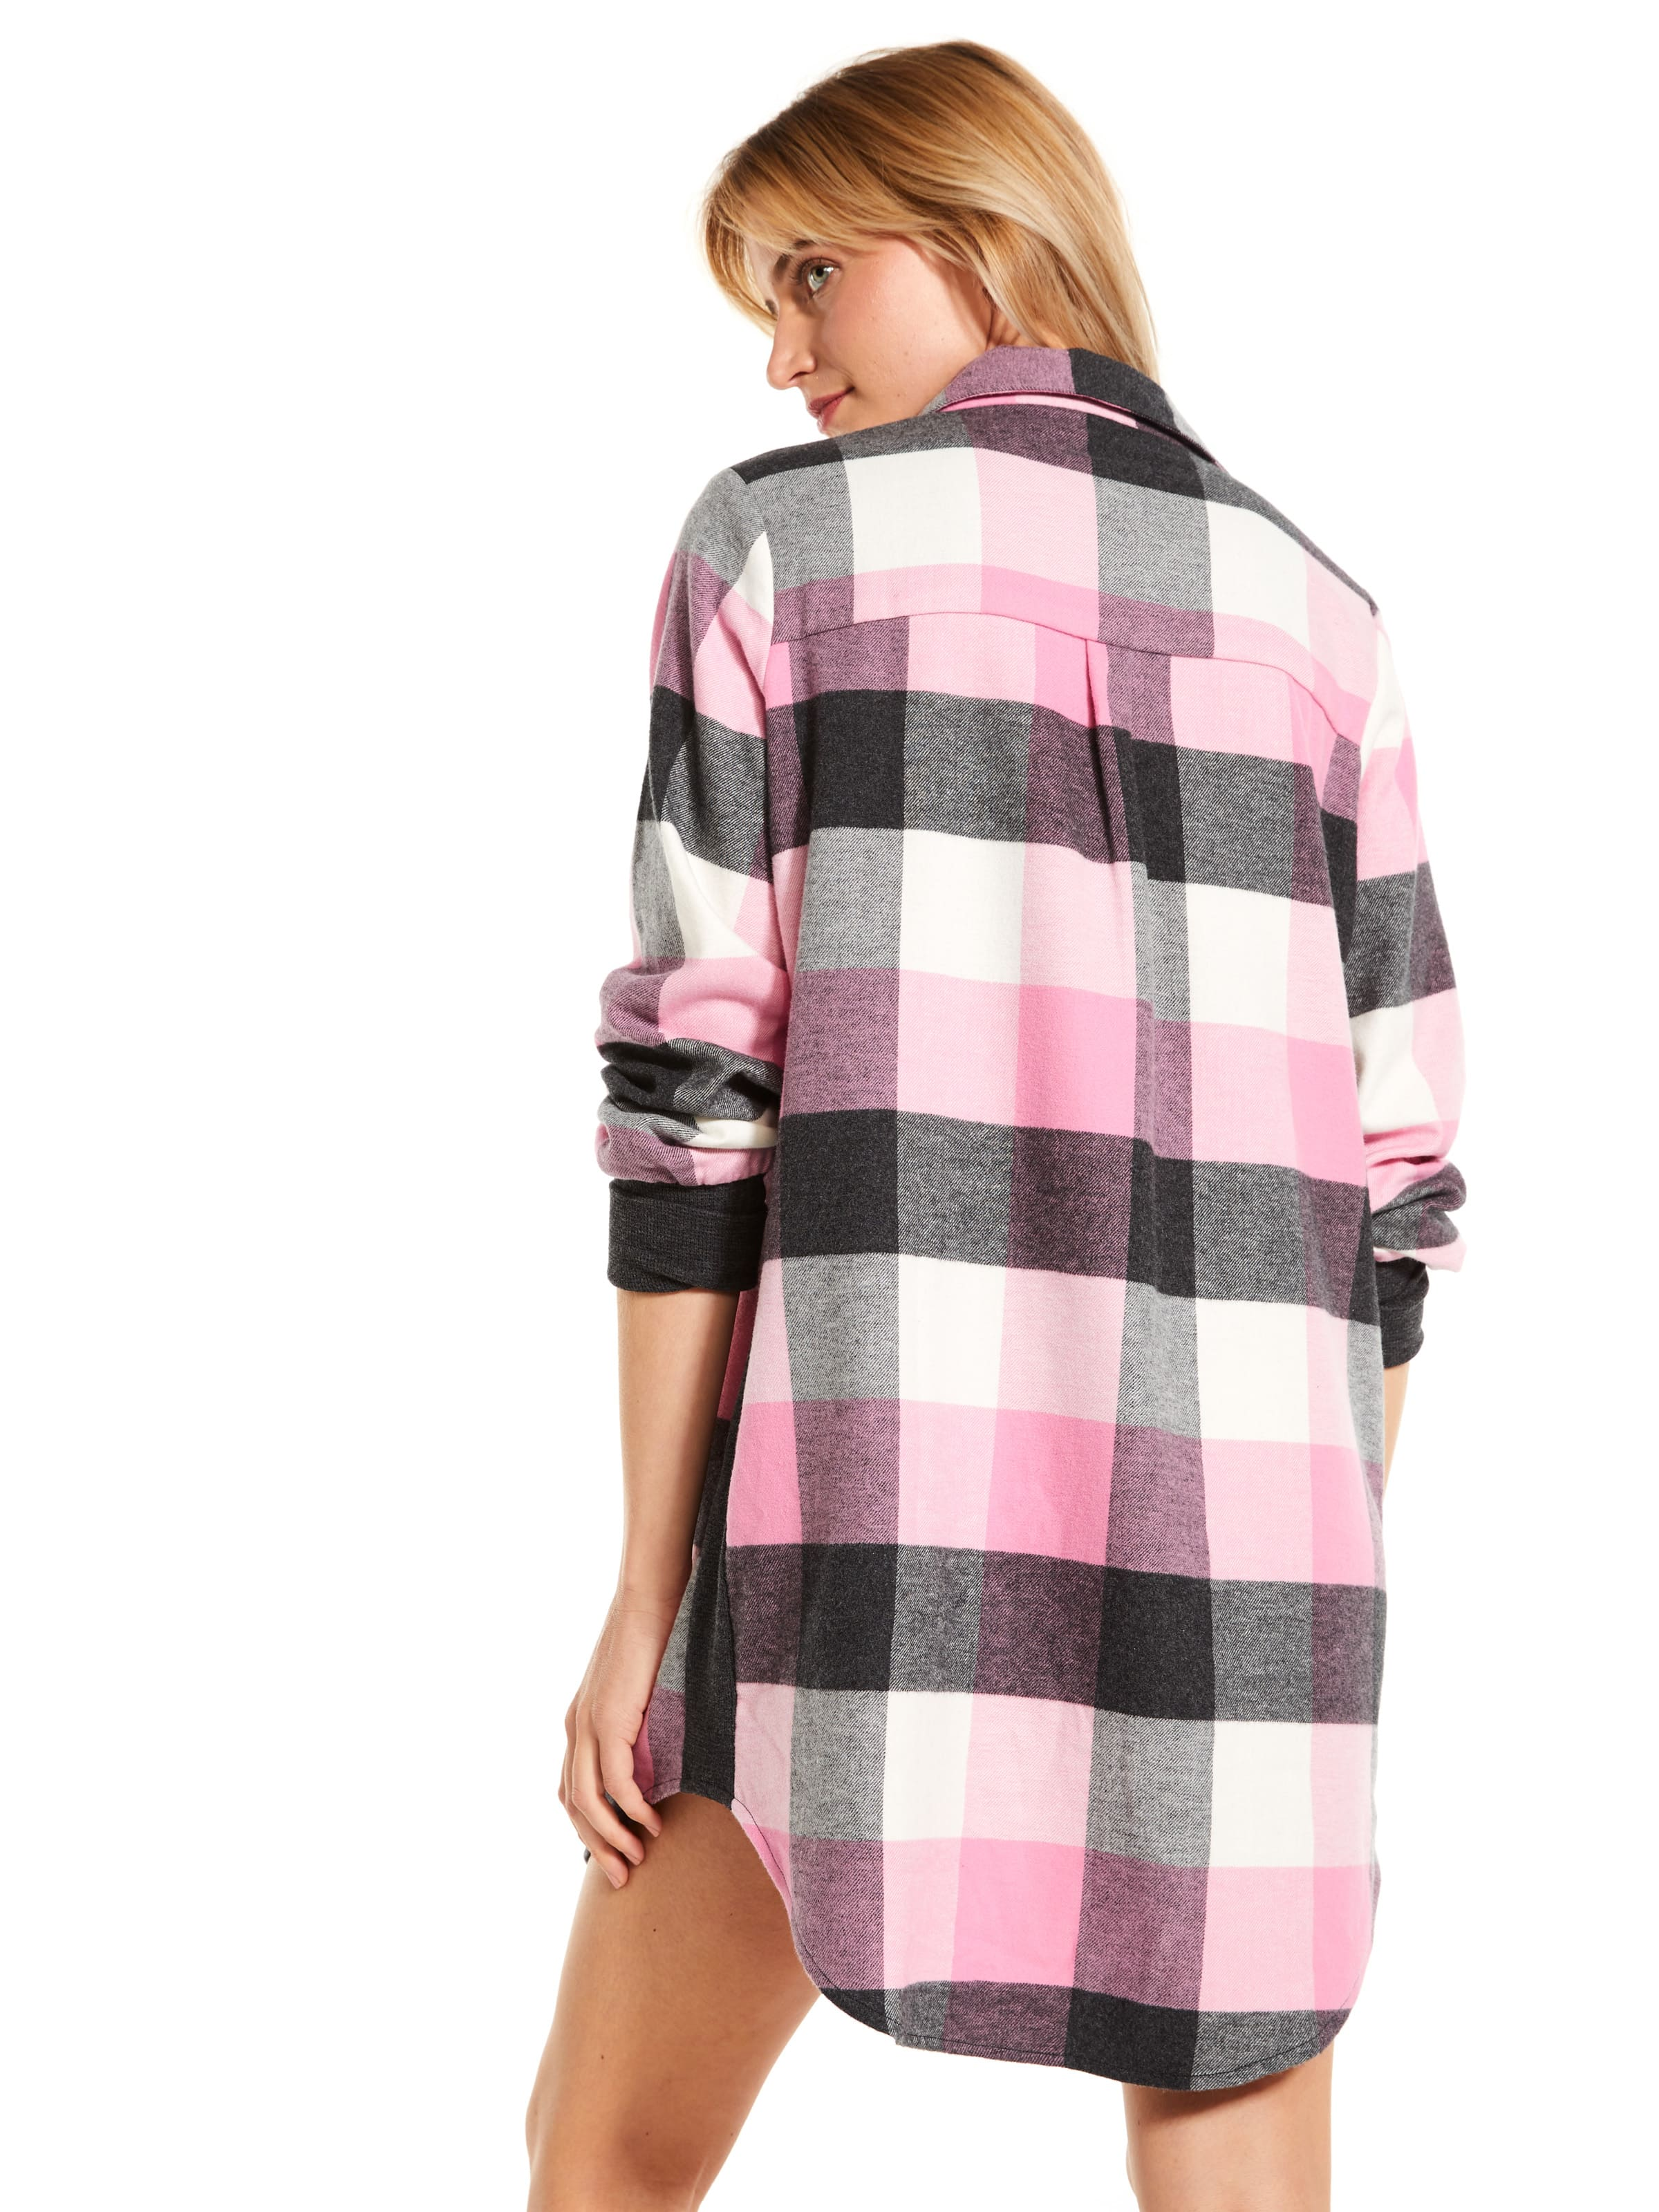 Charcoal Buffalo Check Flannelette Nightshirt